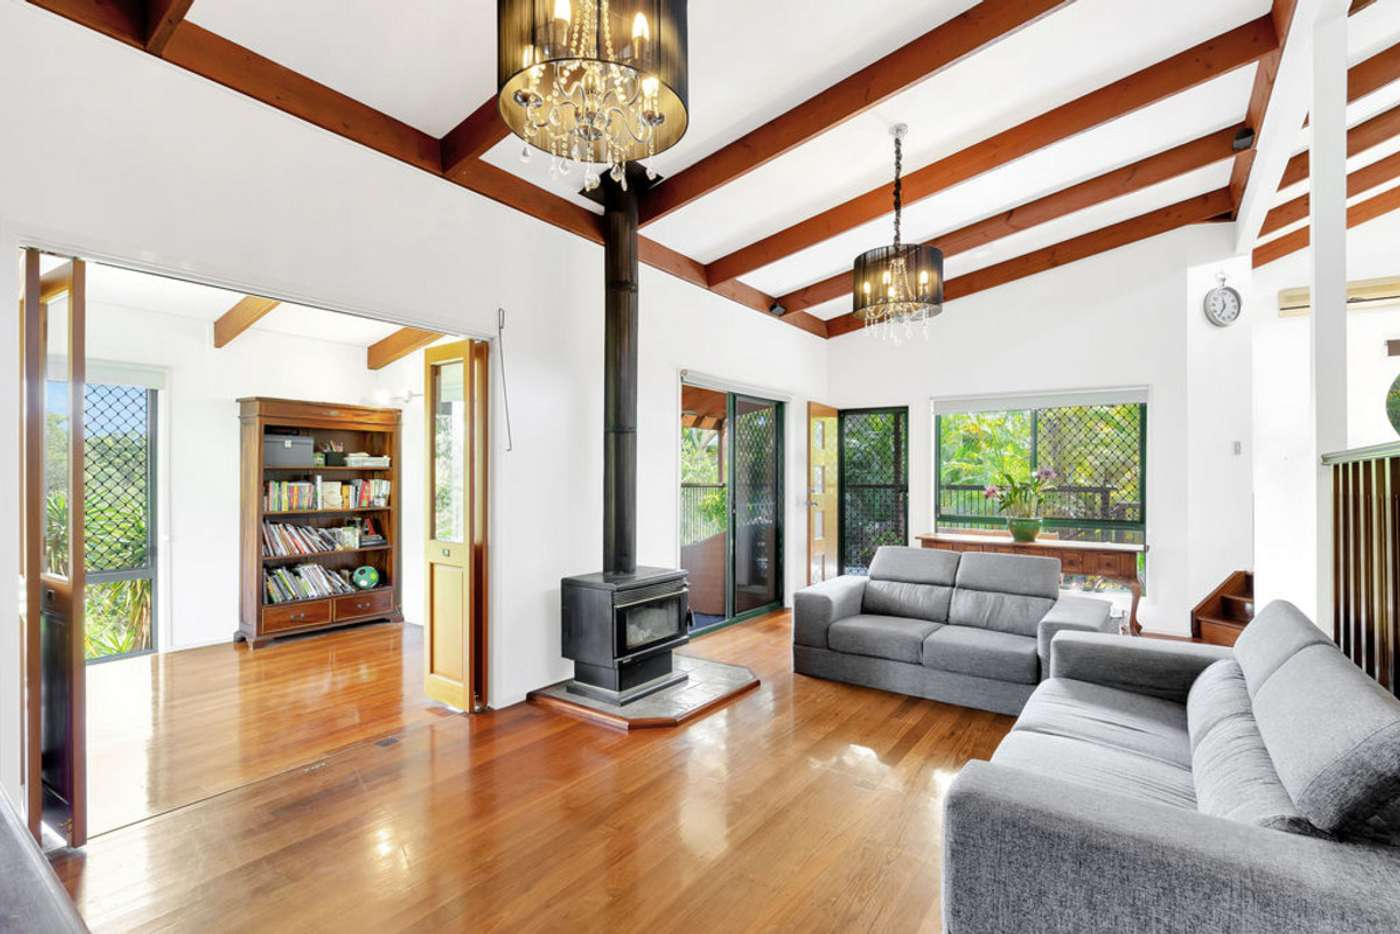 Fifth view of Homely house listing, 18 Stonehaven Place, Highland Park QLD 4211